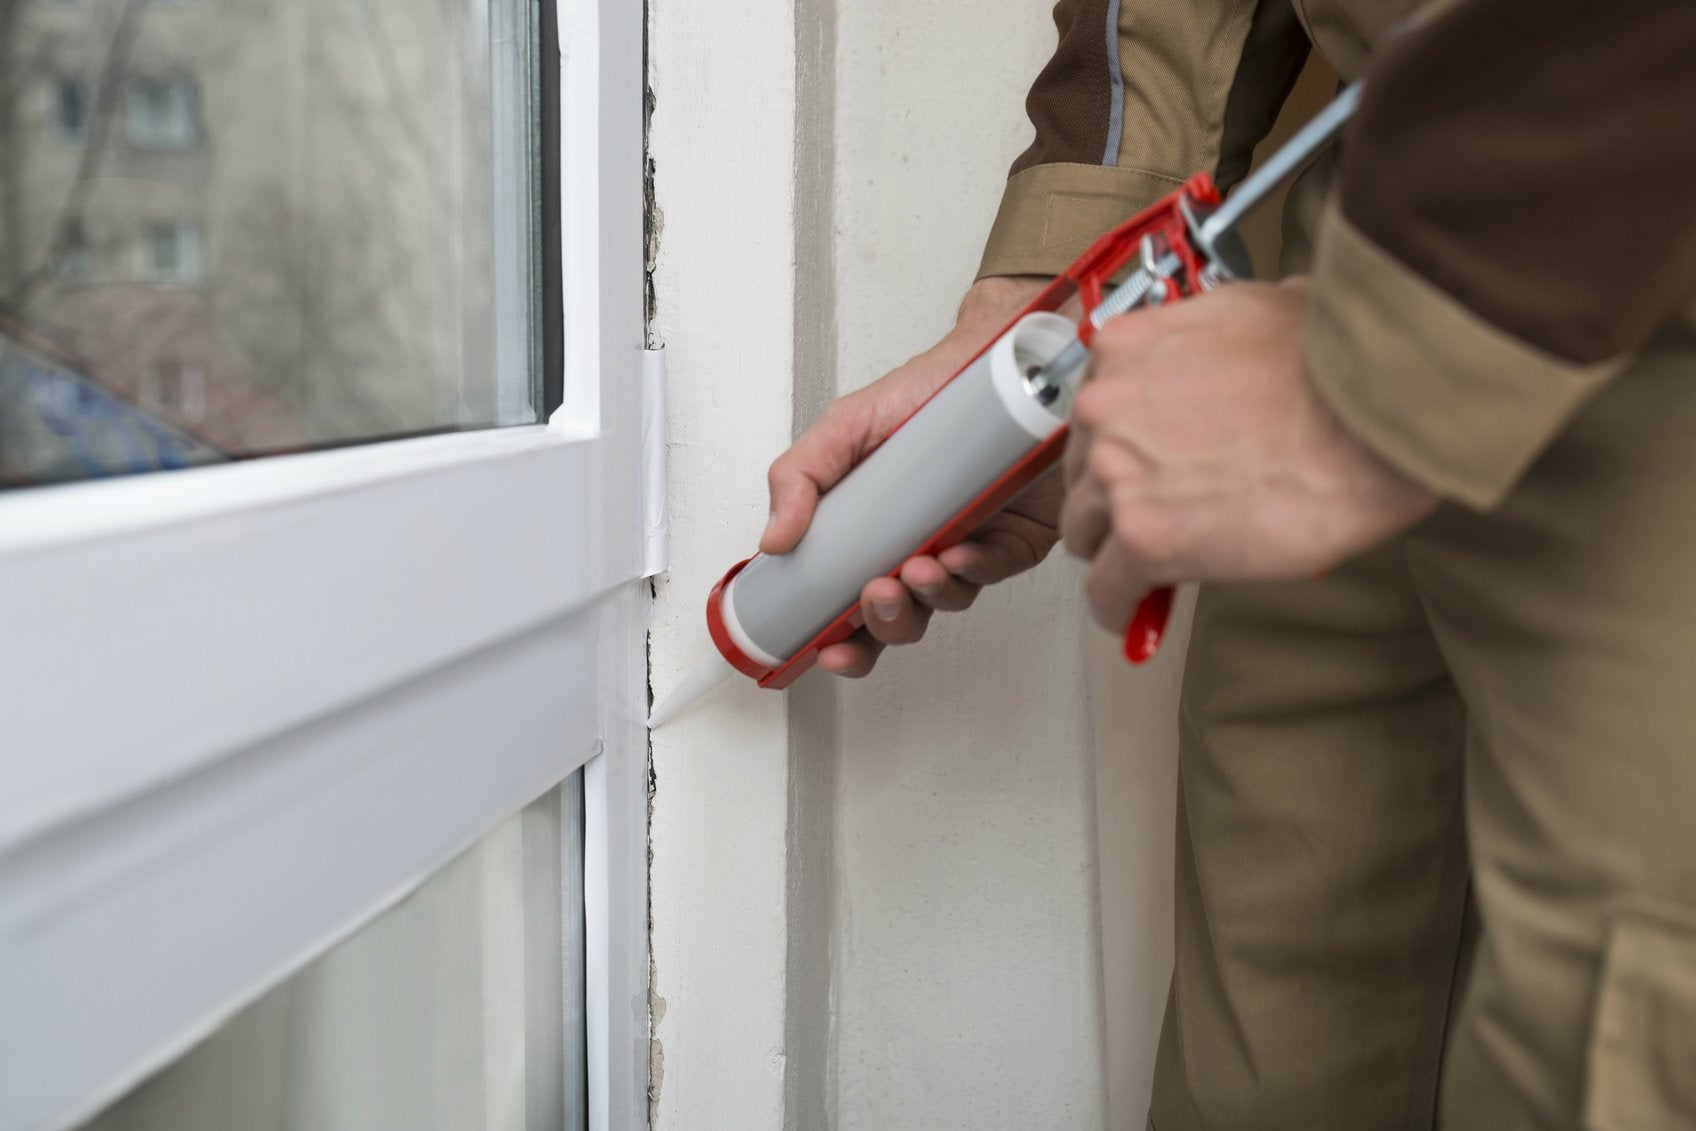 How to Insulate Windows by Re-caulking the Exterior